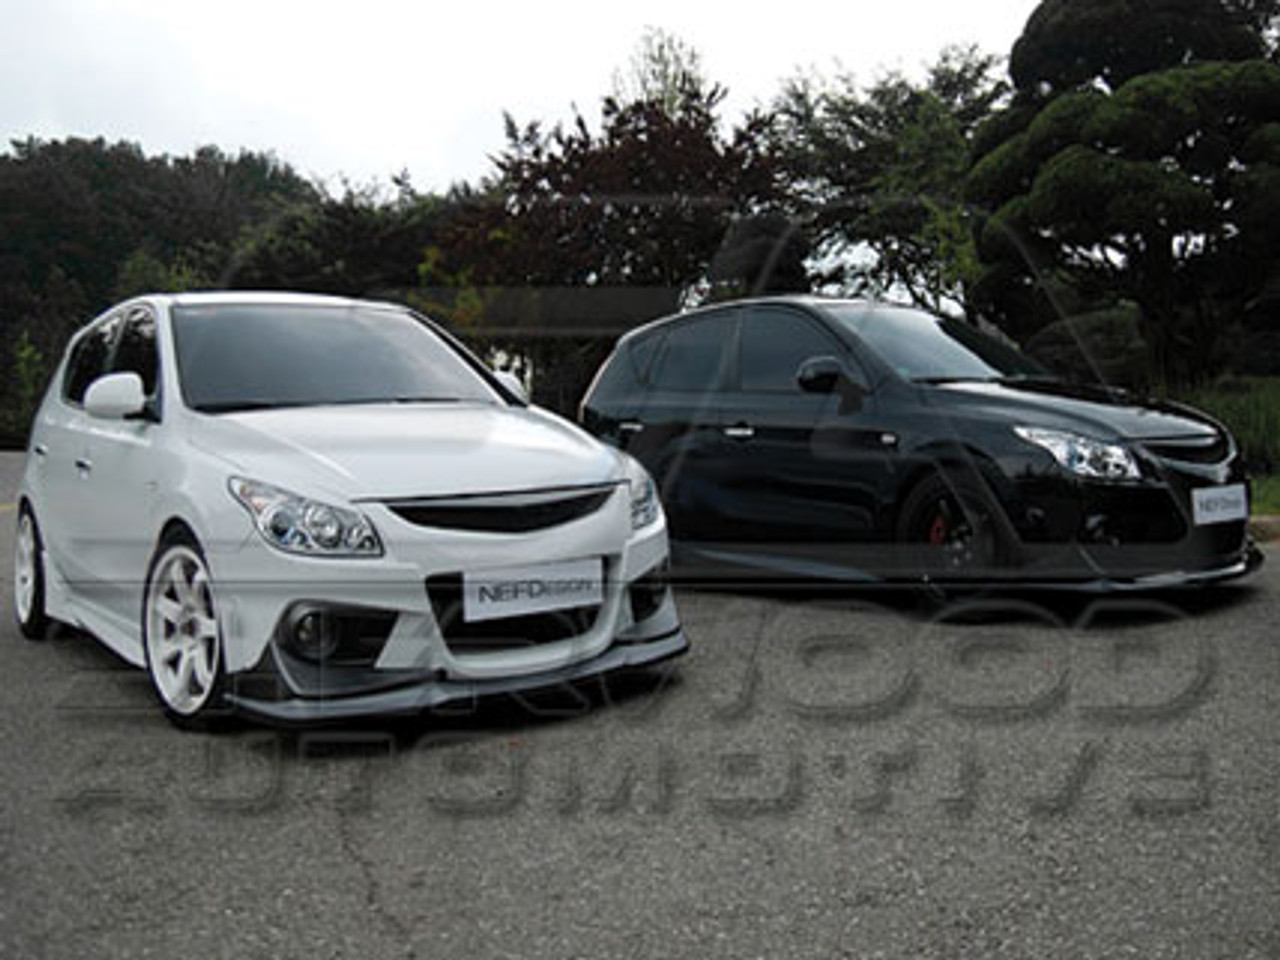 I30 Nefd Body Kit Korean Auto Imports